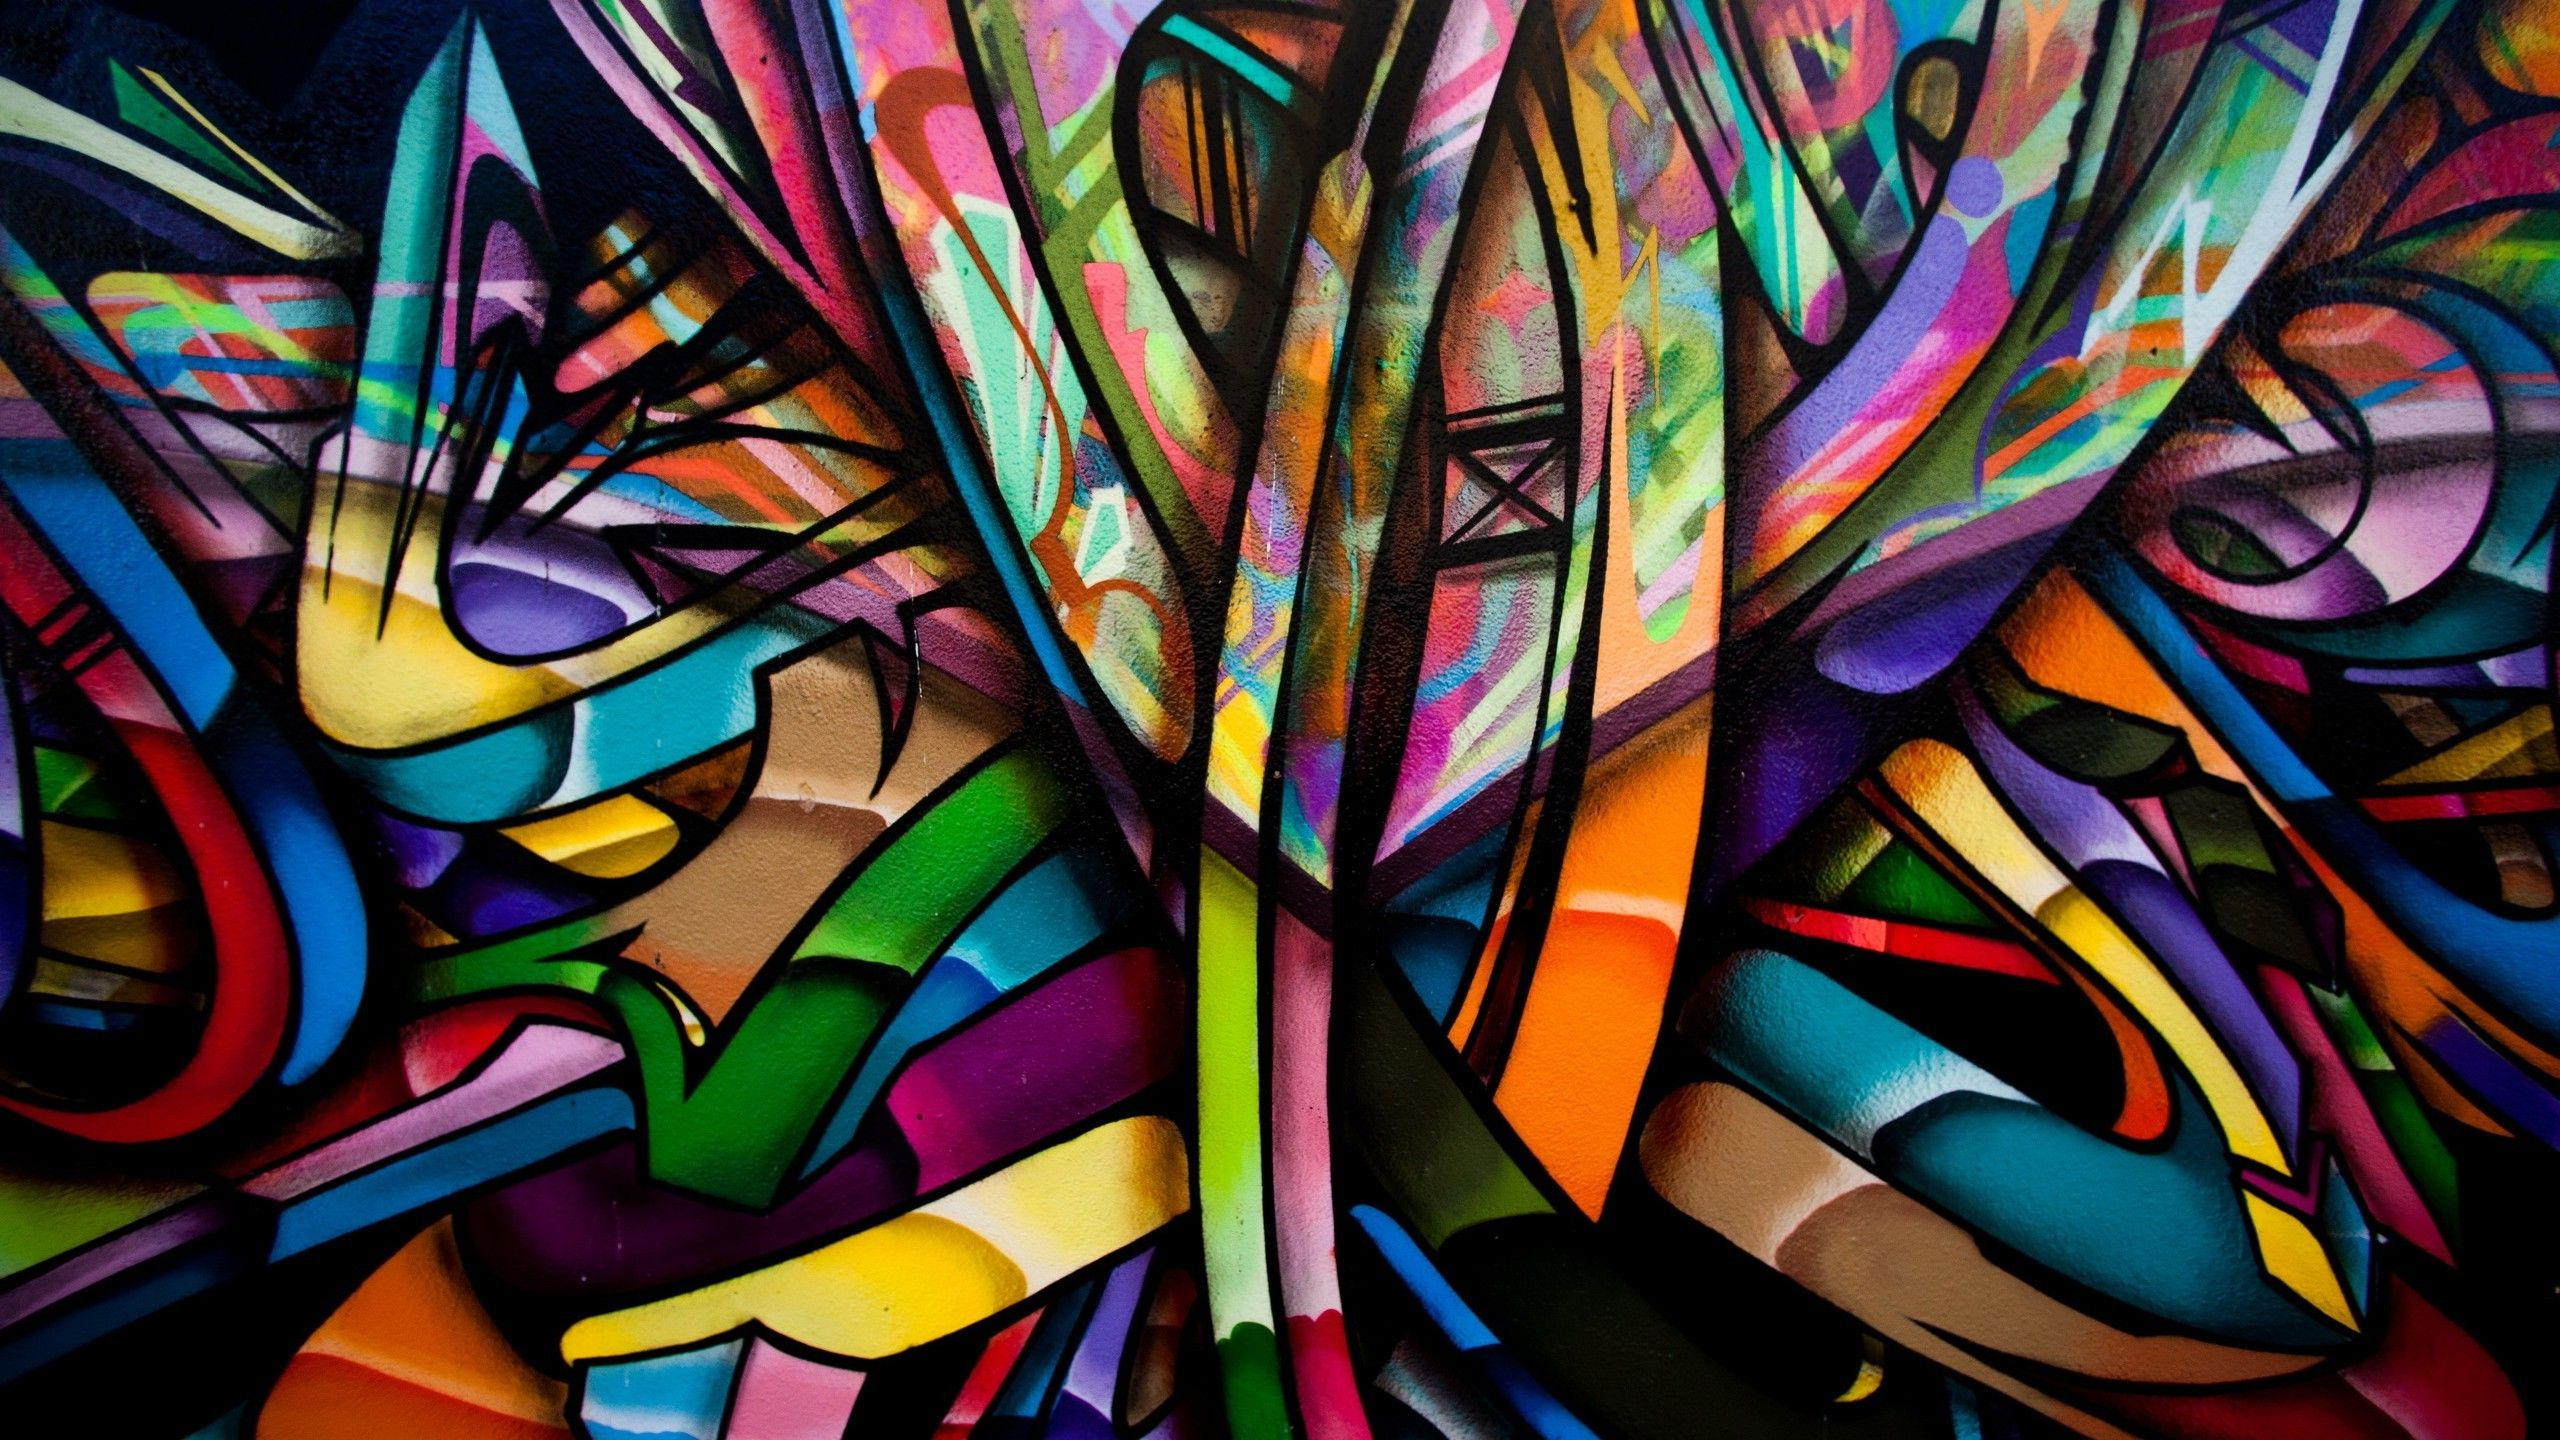 Abstract Colorful Graffiti Walls Artwork Painting Wallpapers Hd